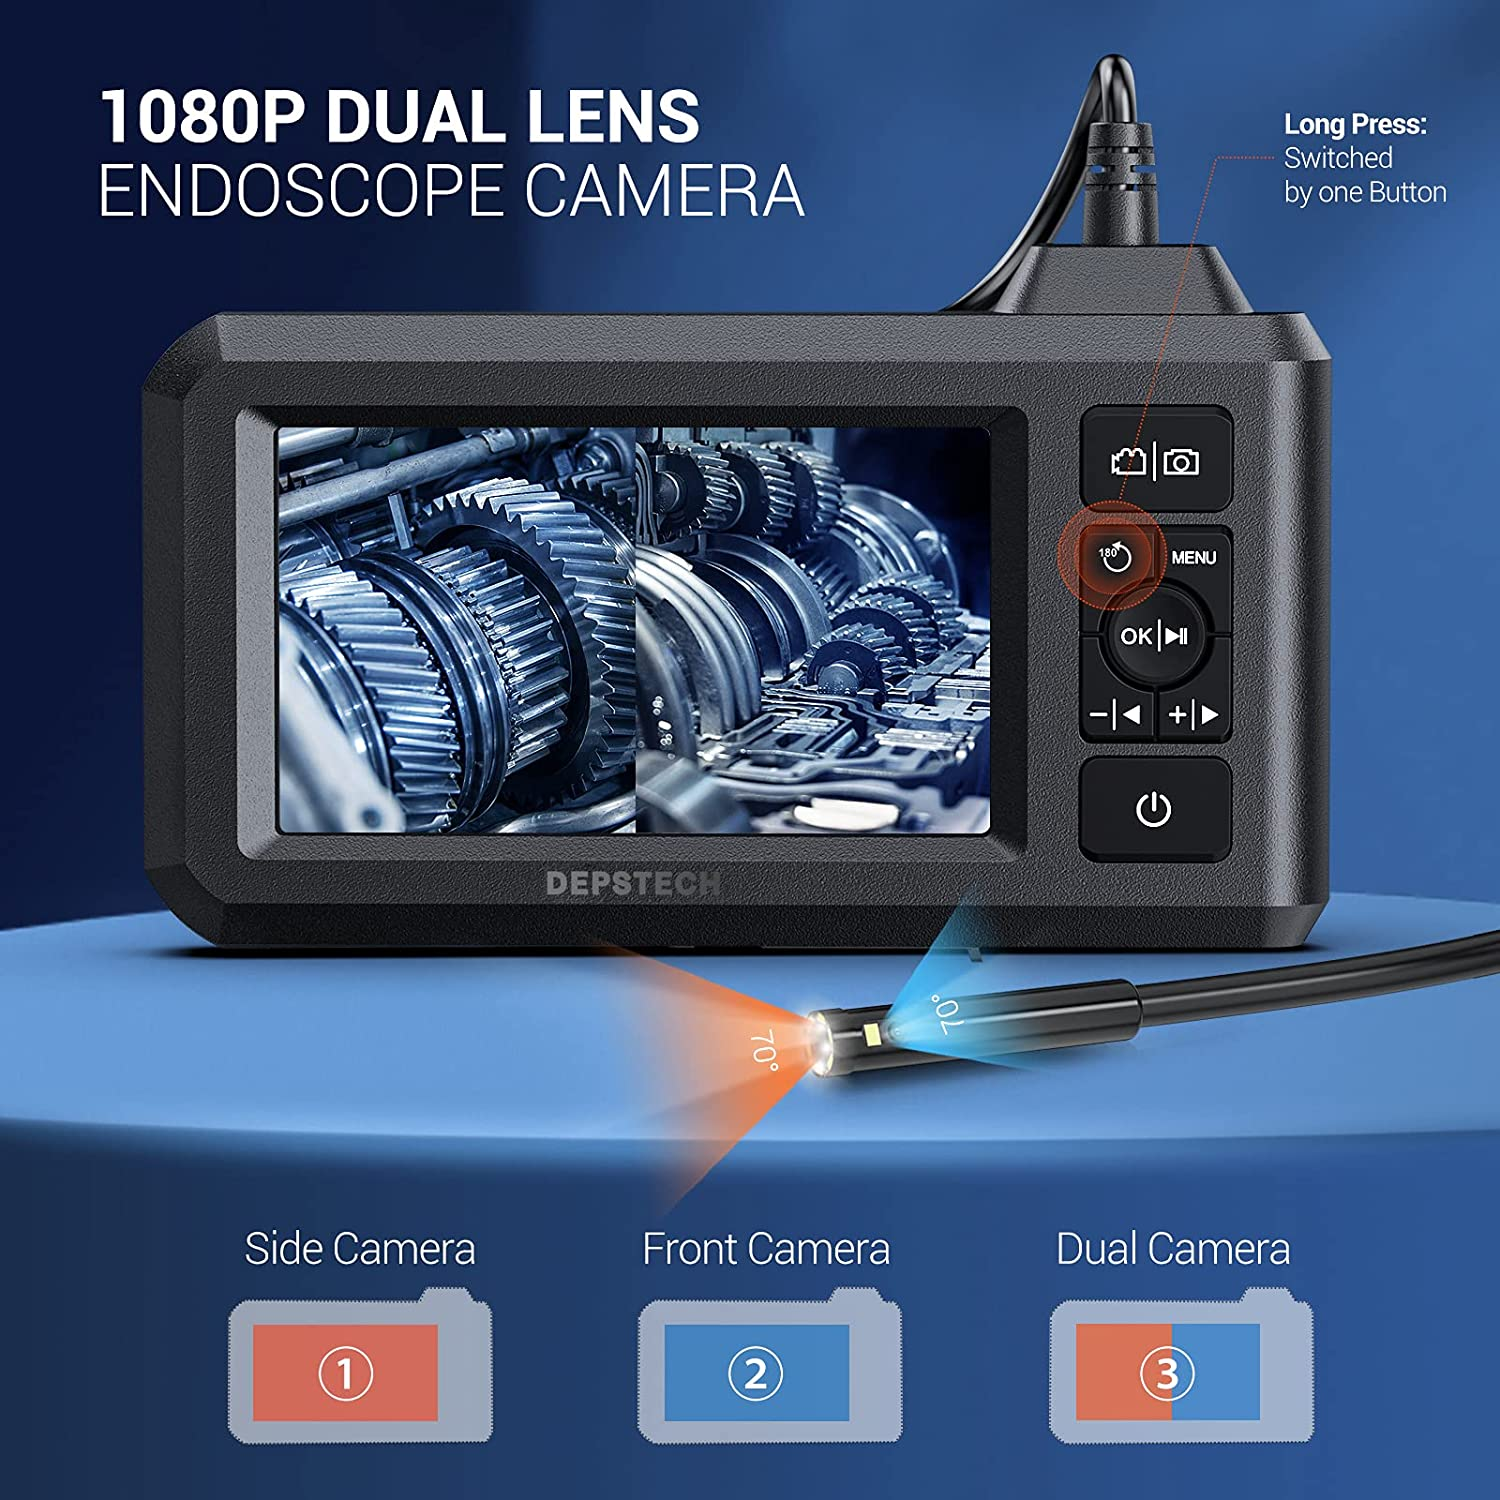 Dual Lens 1080P Industrial Endoscope 4.3